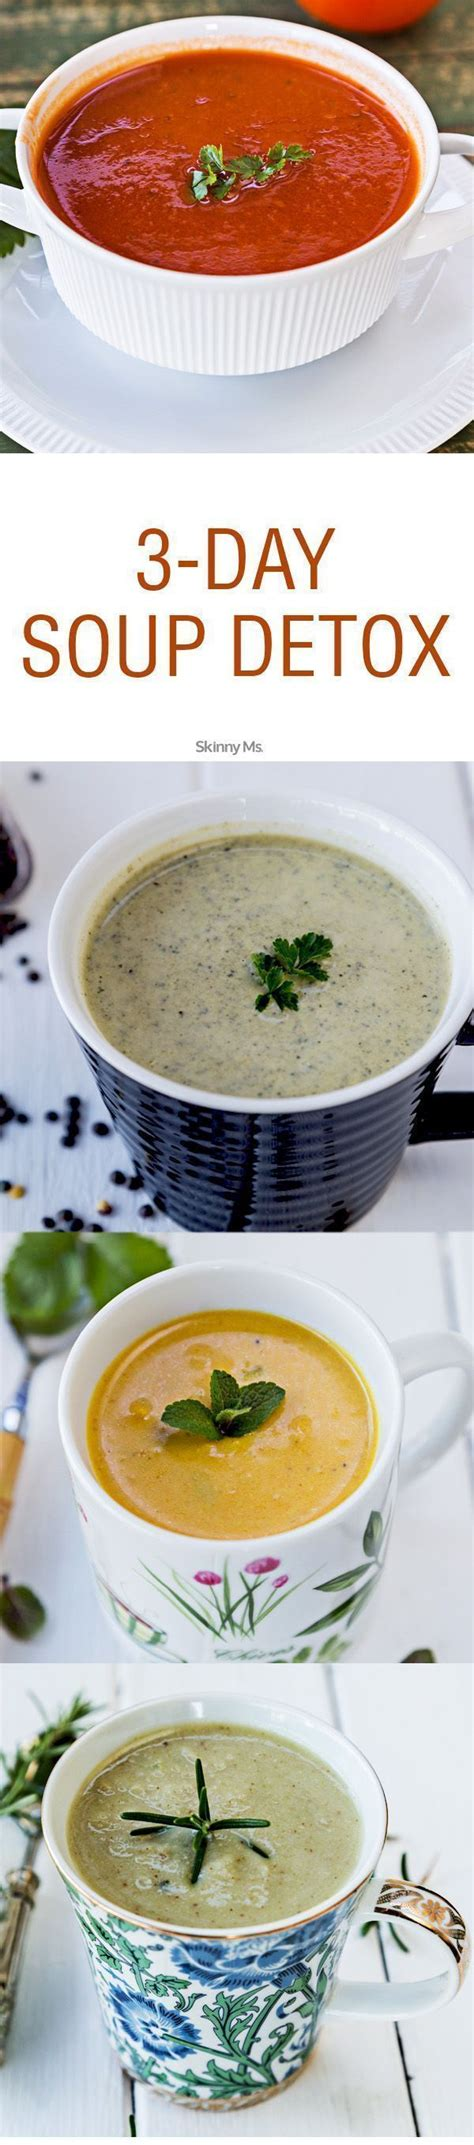 Cleansing Detox Soup Recipe by 3 Day Soup Detox Just Detoxify Your And